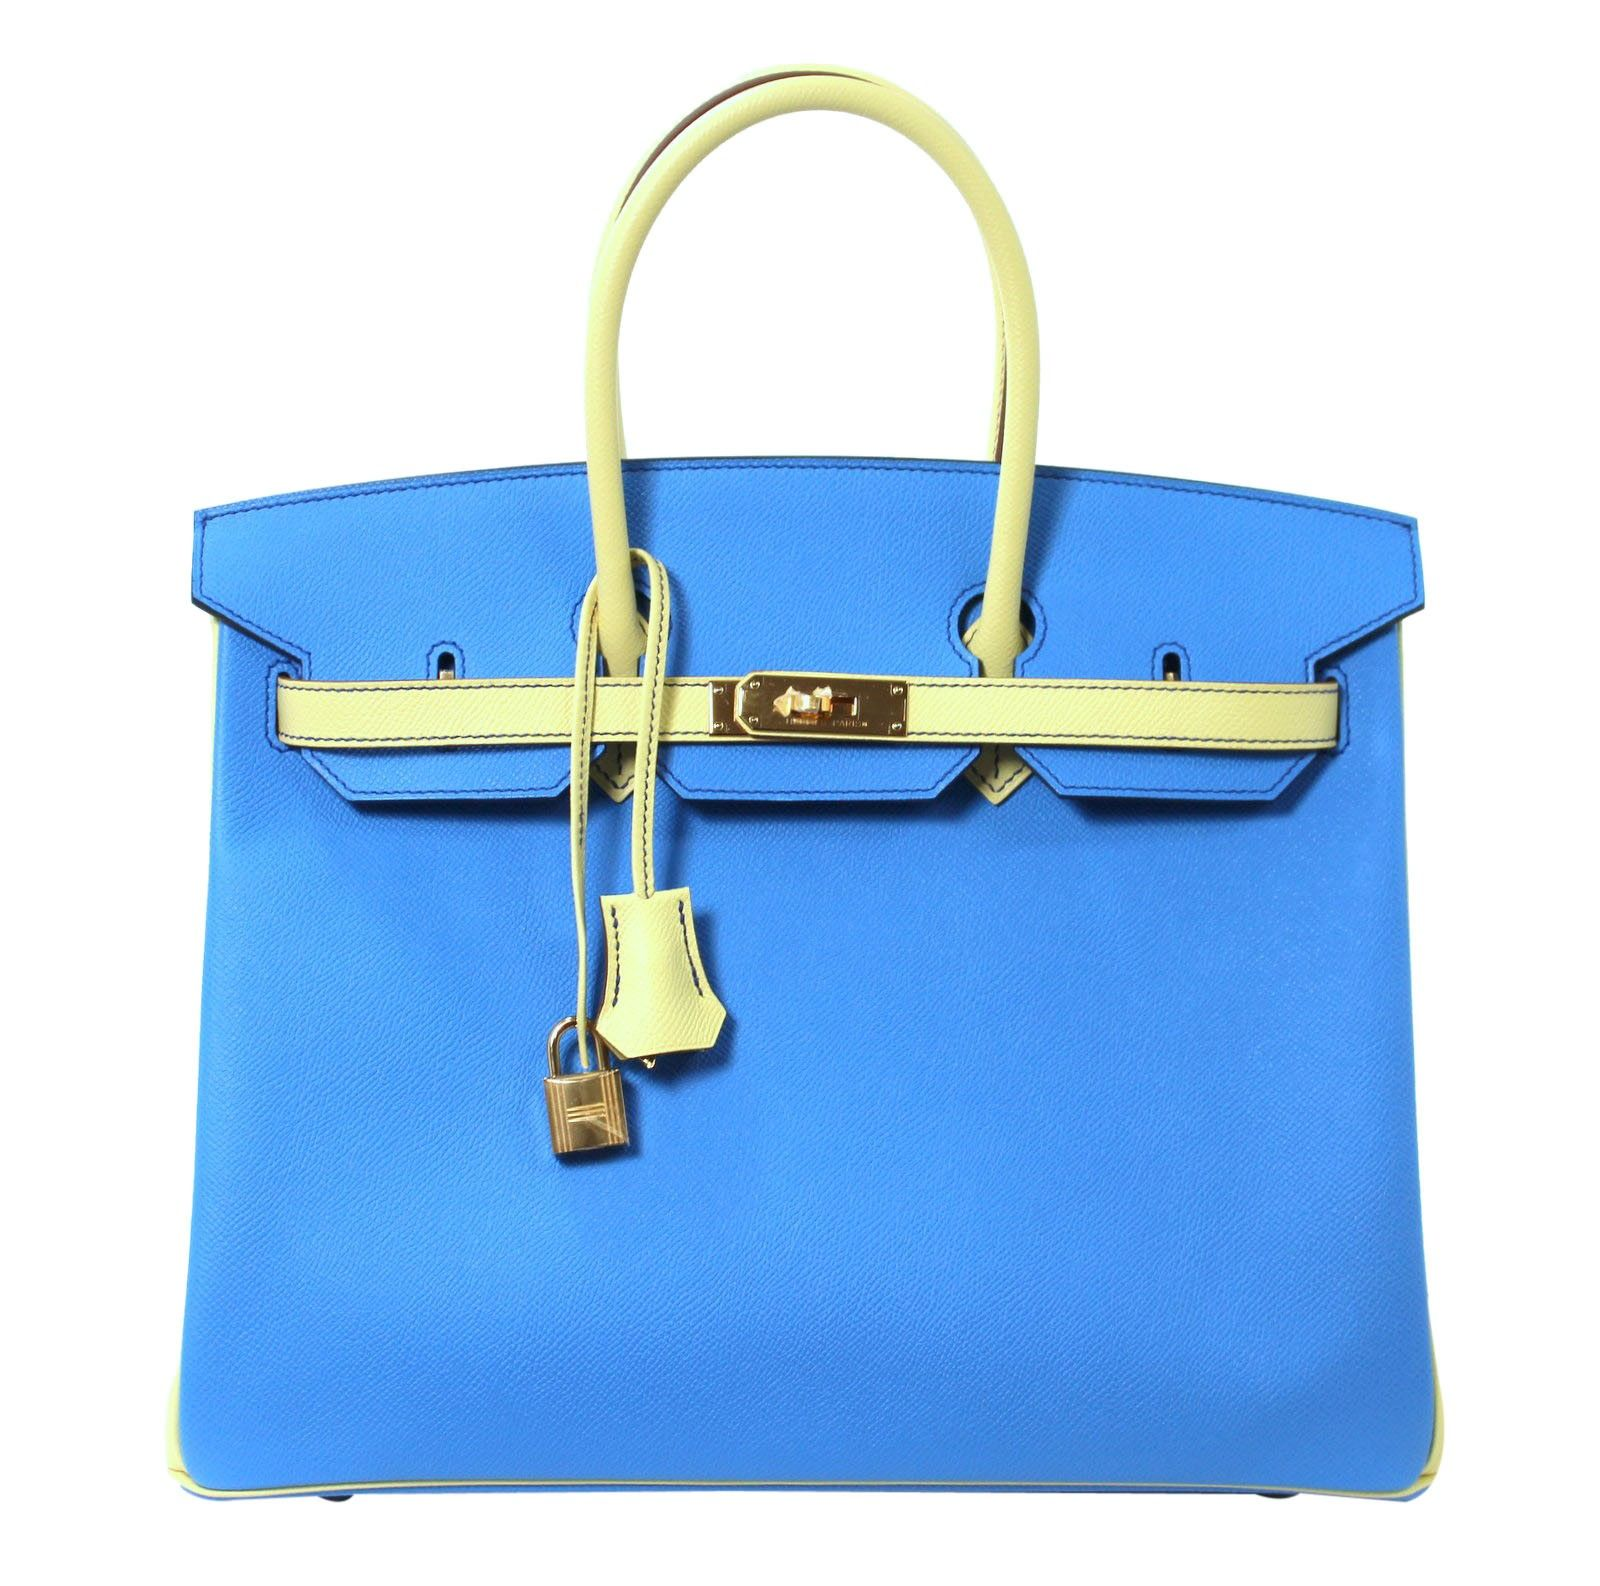 dd4bae1a749c Hermès Blue Paradis Jaune Canari Epsom BiColor Birkin 35 - Hermès 35 cm Horseshoe  Birkin Bag in BLEU PARADIS and JAUNE CANARI Epsom Leather - Never Carried